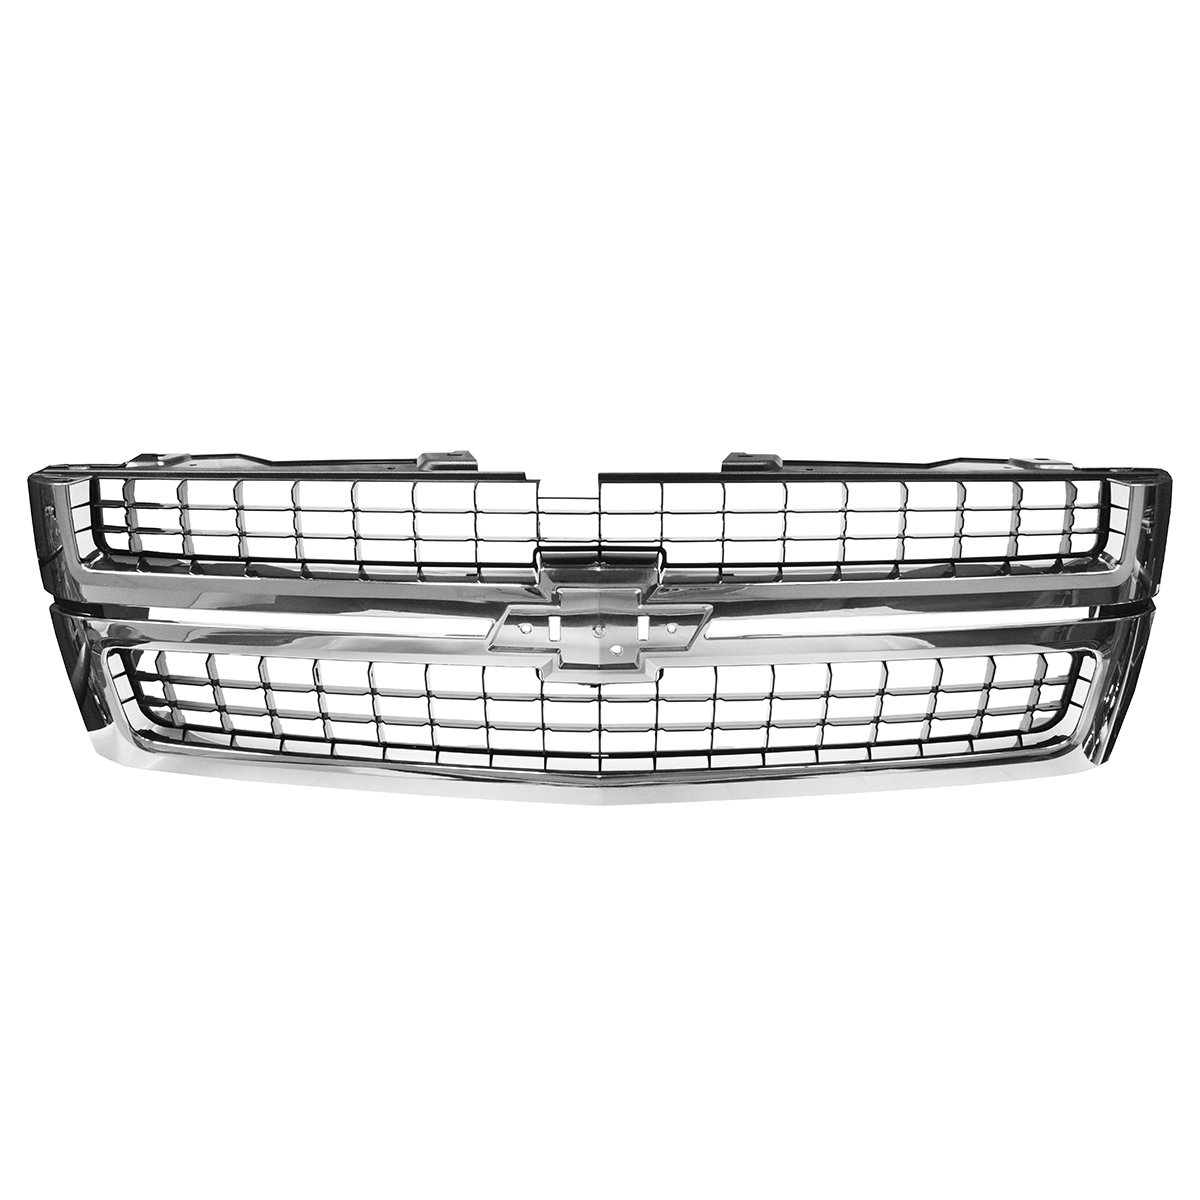 Grille Grill Chrome Black for 07-10 Chevy Silverado Truck 2500HD 3500HD